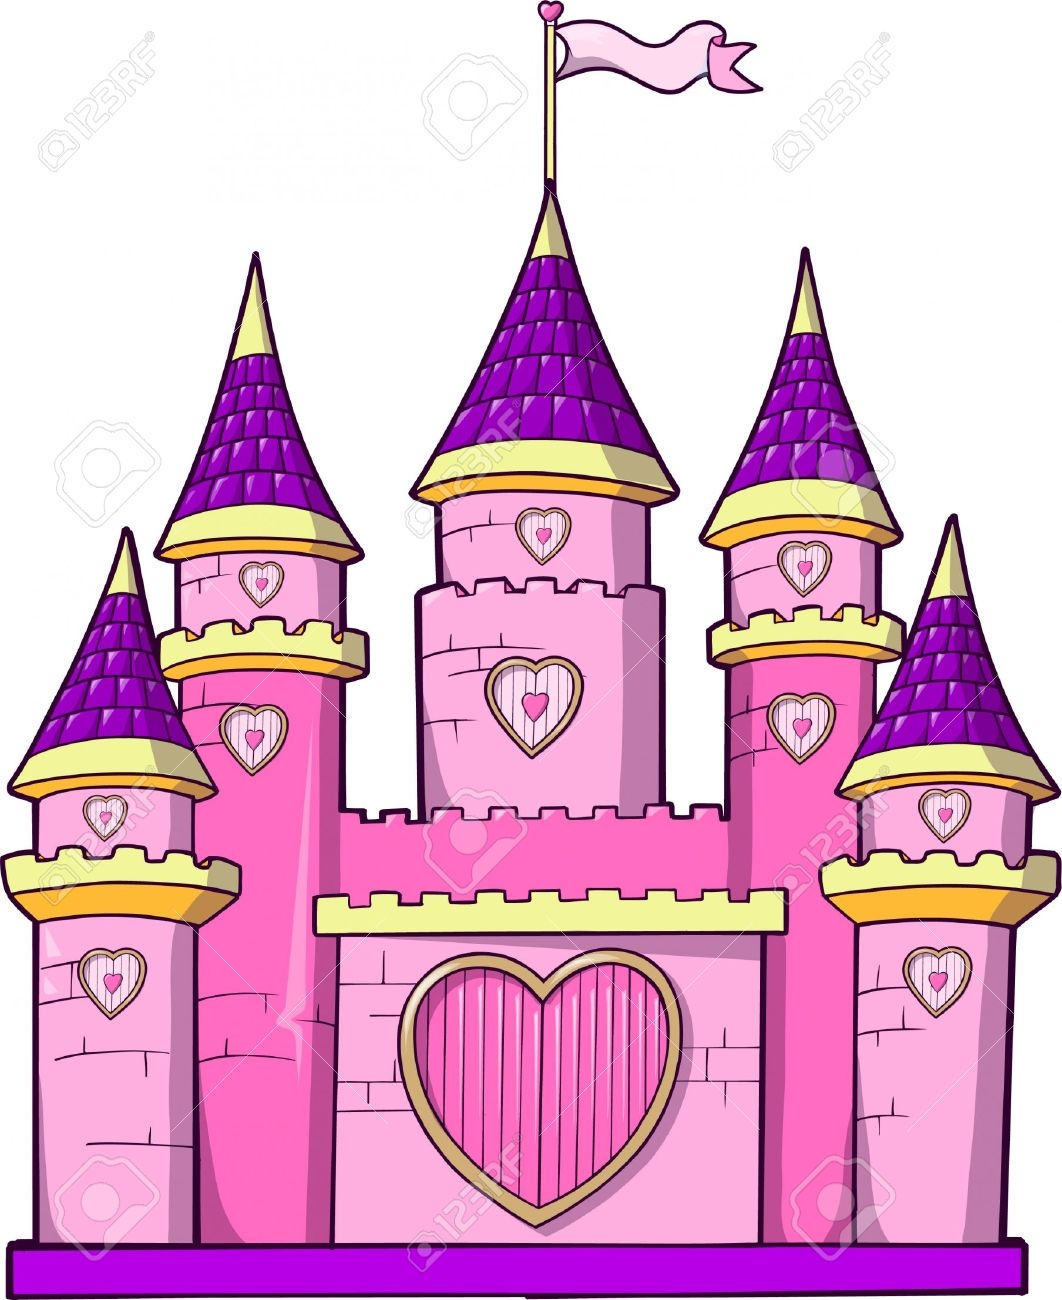 Awesome design digital collection. Castle clipart princess